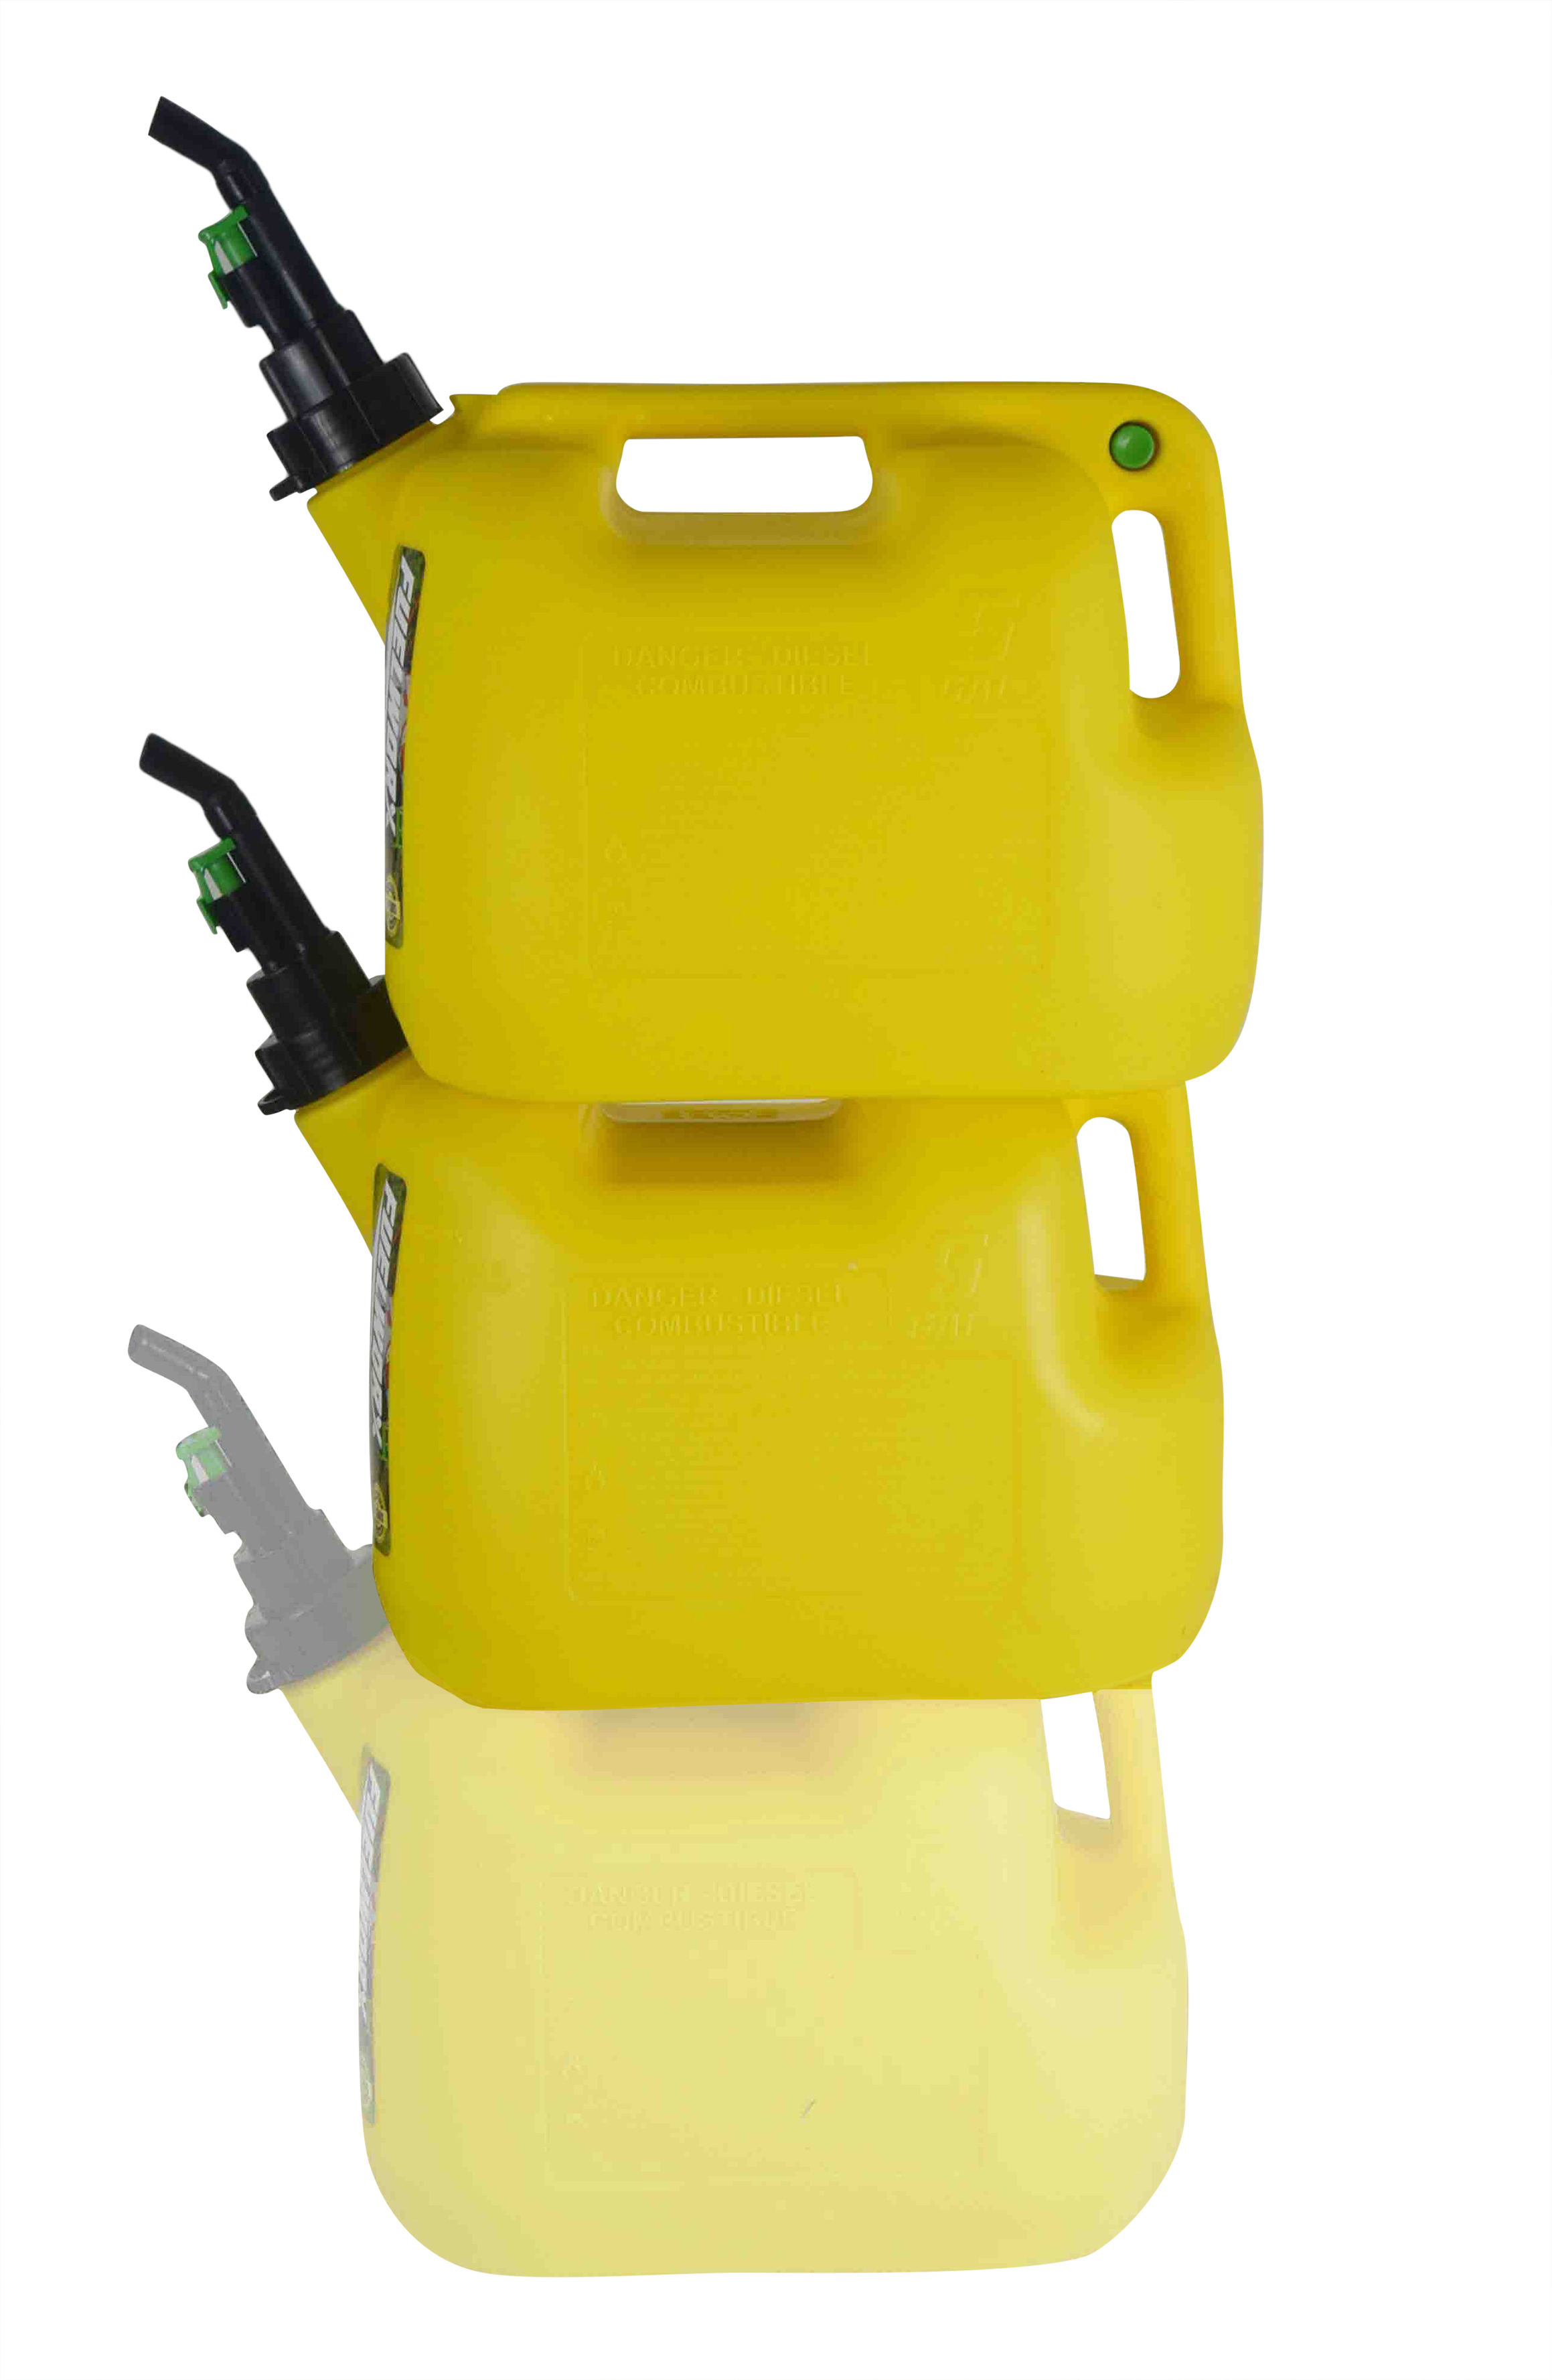 Fuelworx-Yellow-5-Gallon-Stackable-Fast-Pour-Diesel-Fuel-Cans-CARB-Compliant-Made-in-The-USA-5-Gallon-Diesel-Cans-2-Pack-image-1